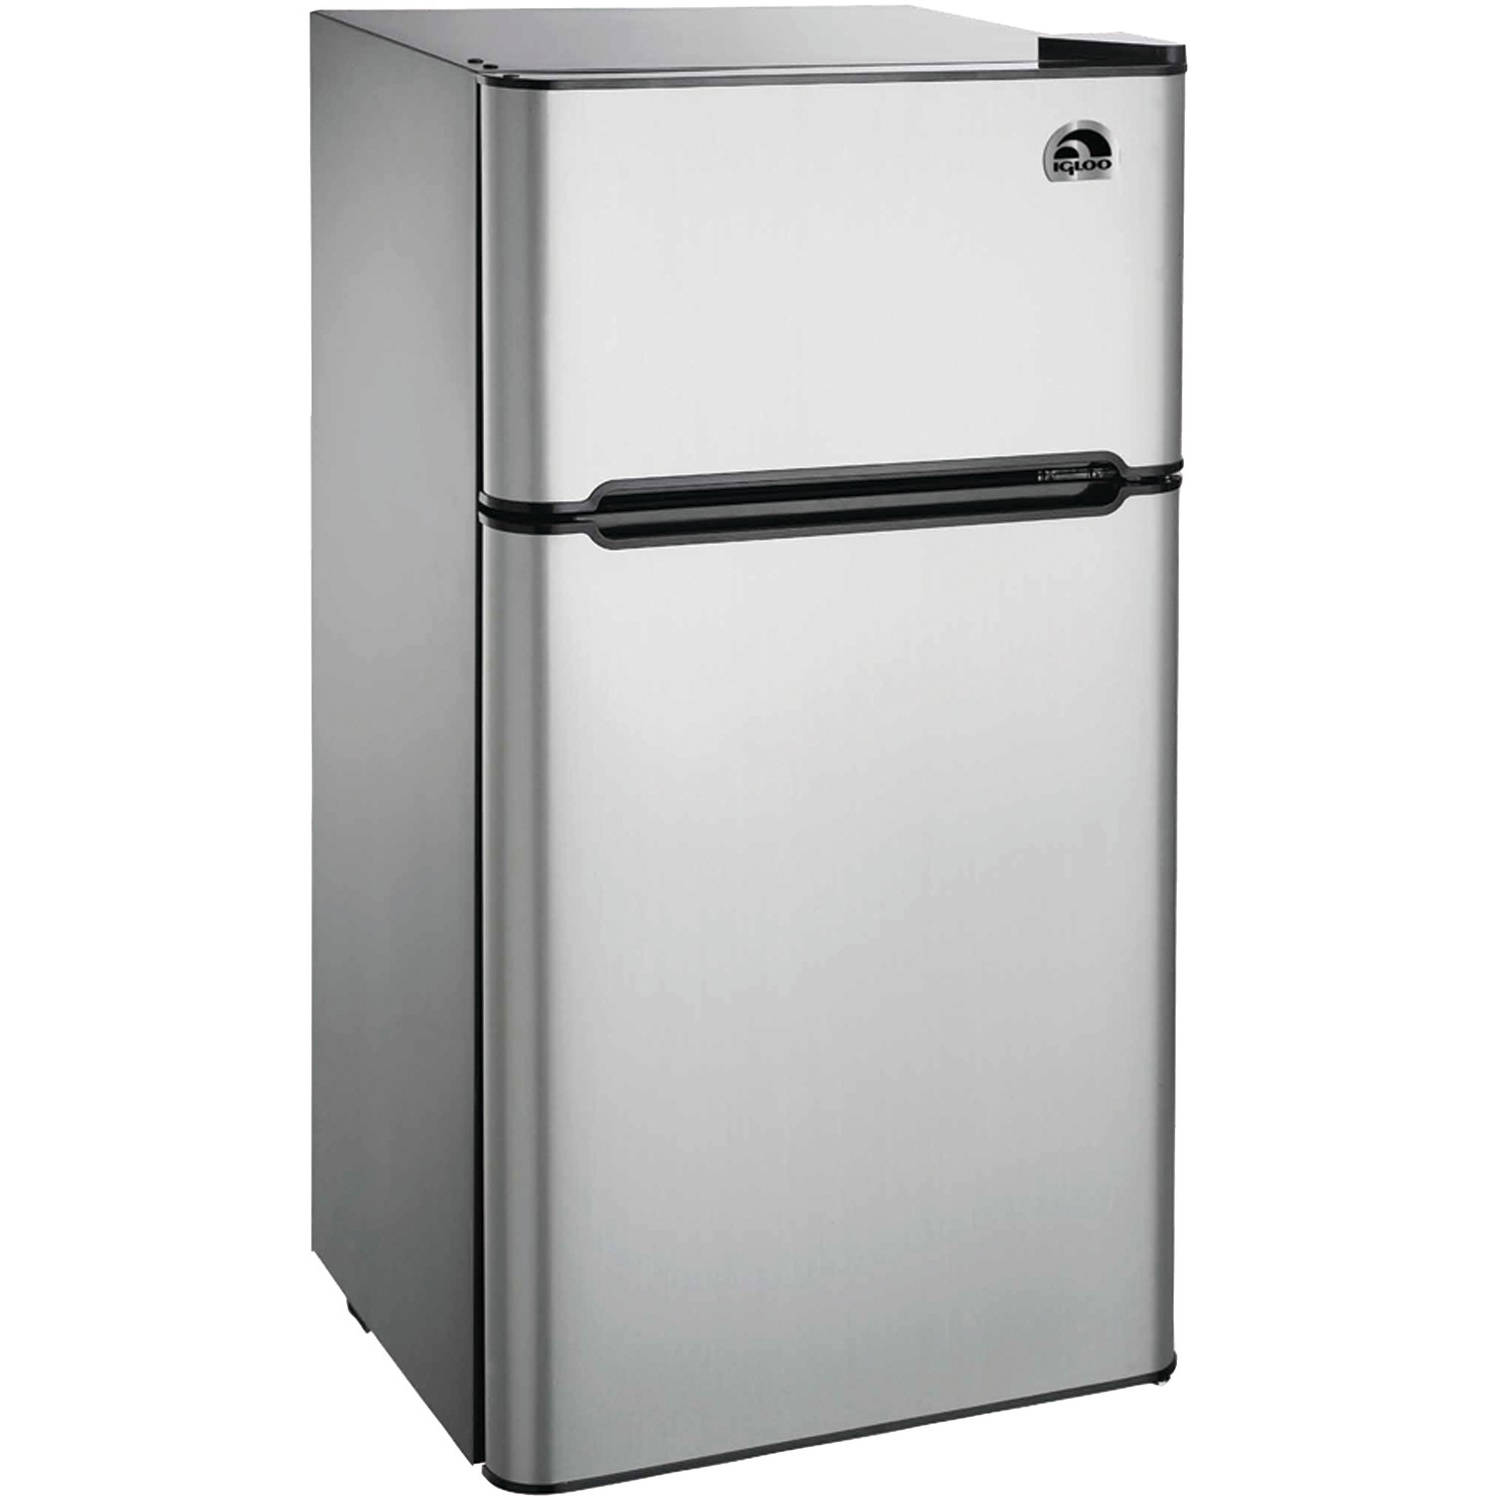 Igloo 4.5 cu ft 2-Door Refrigerator, Stainless Steel